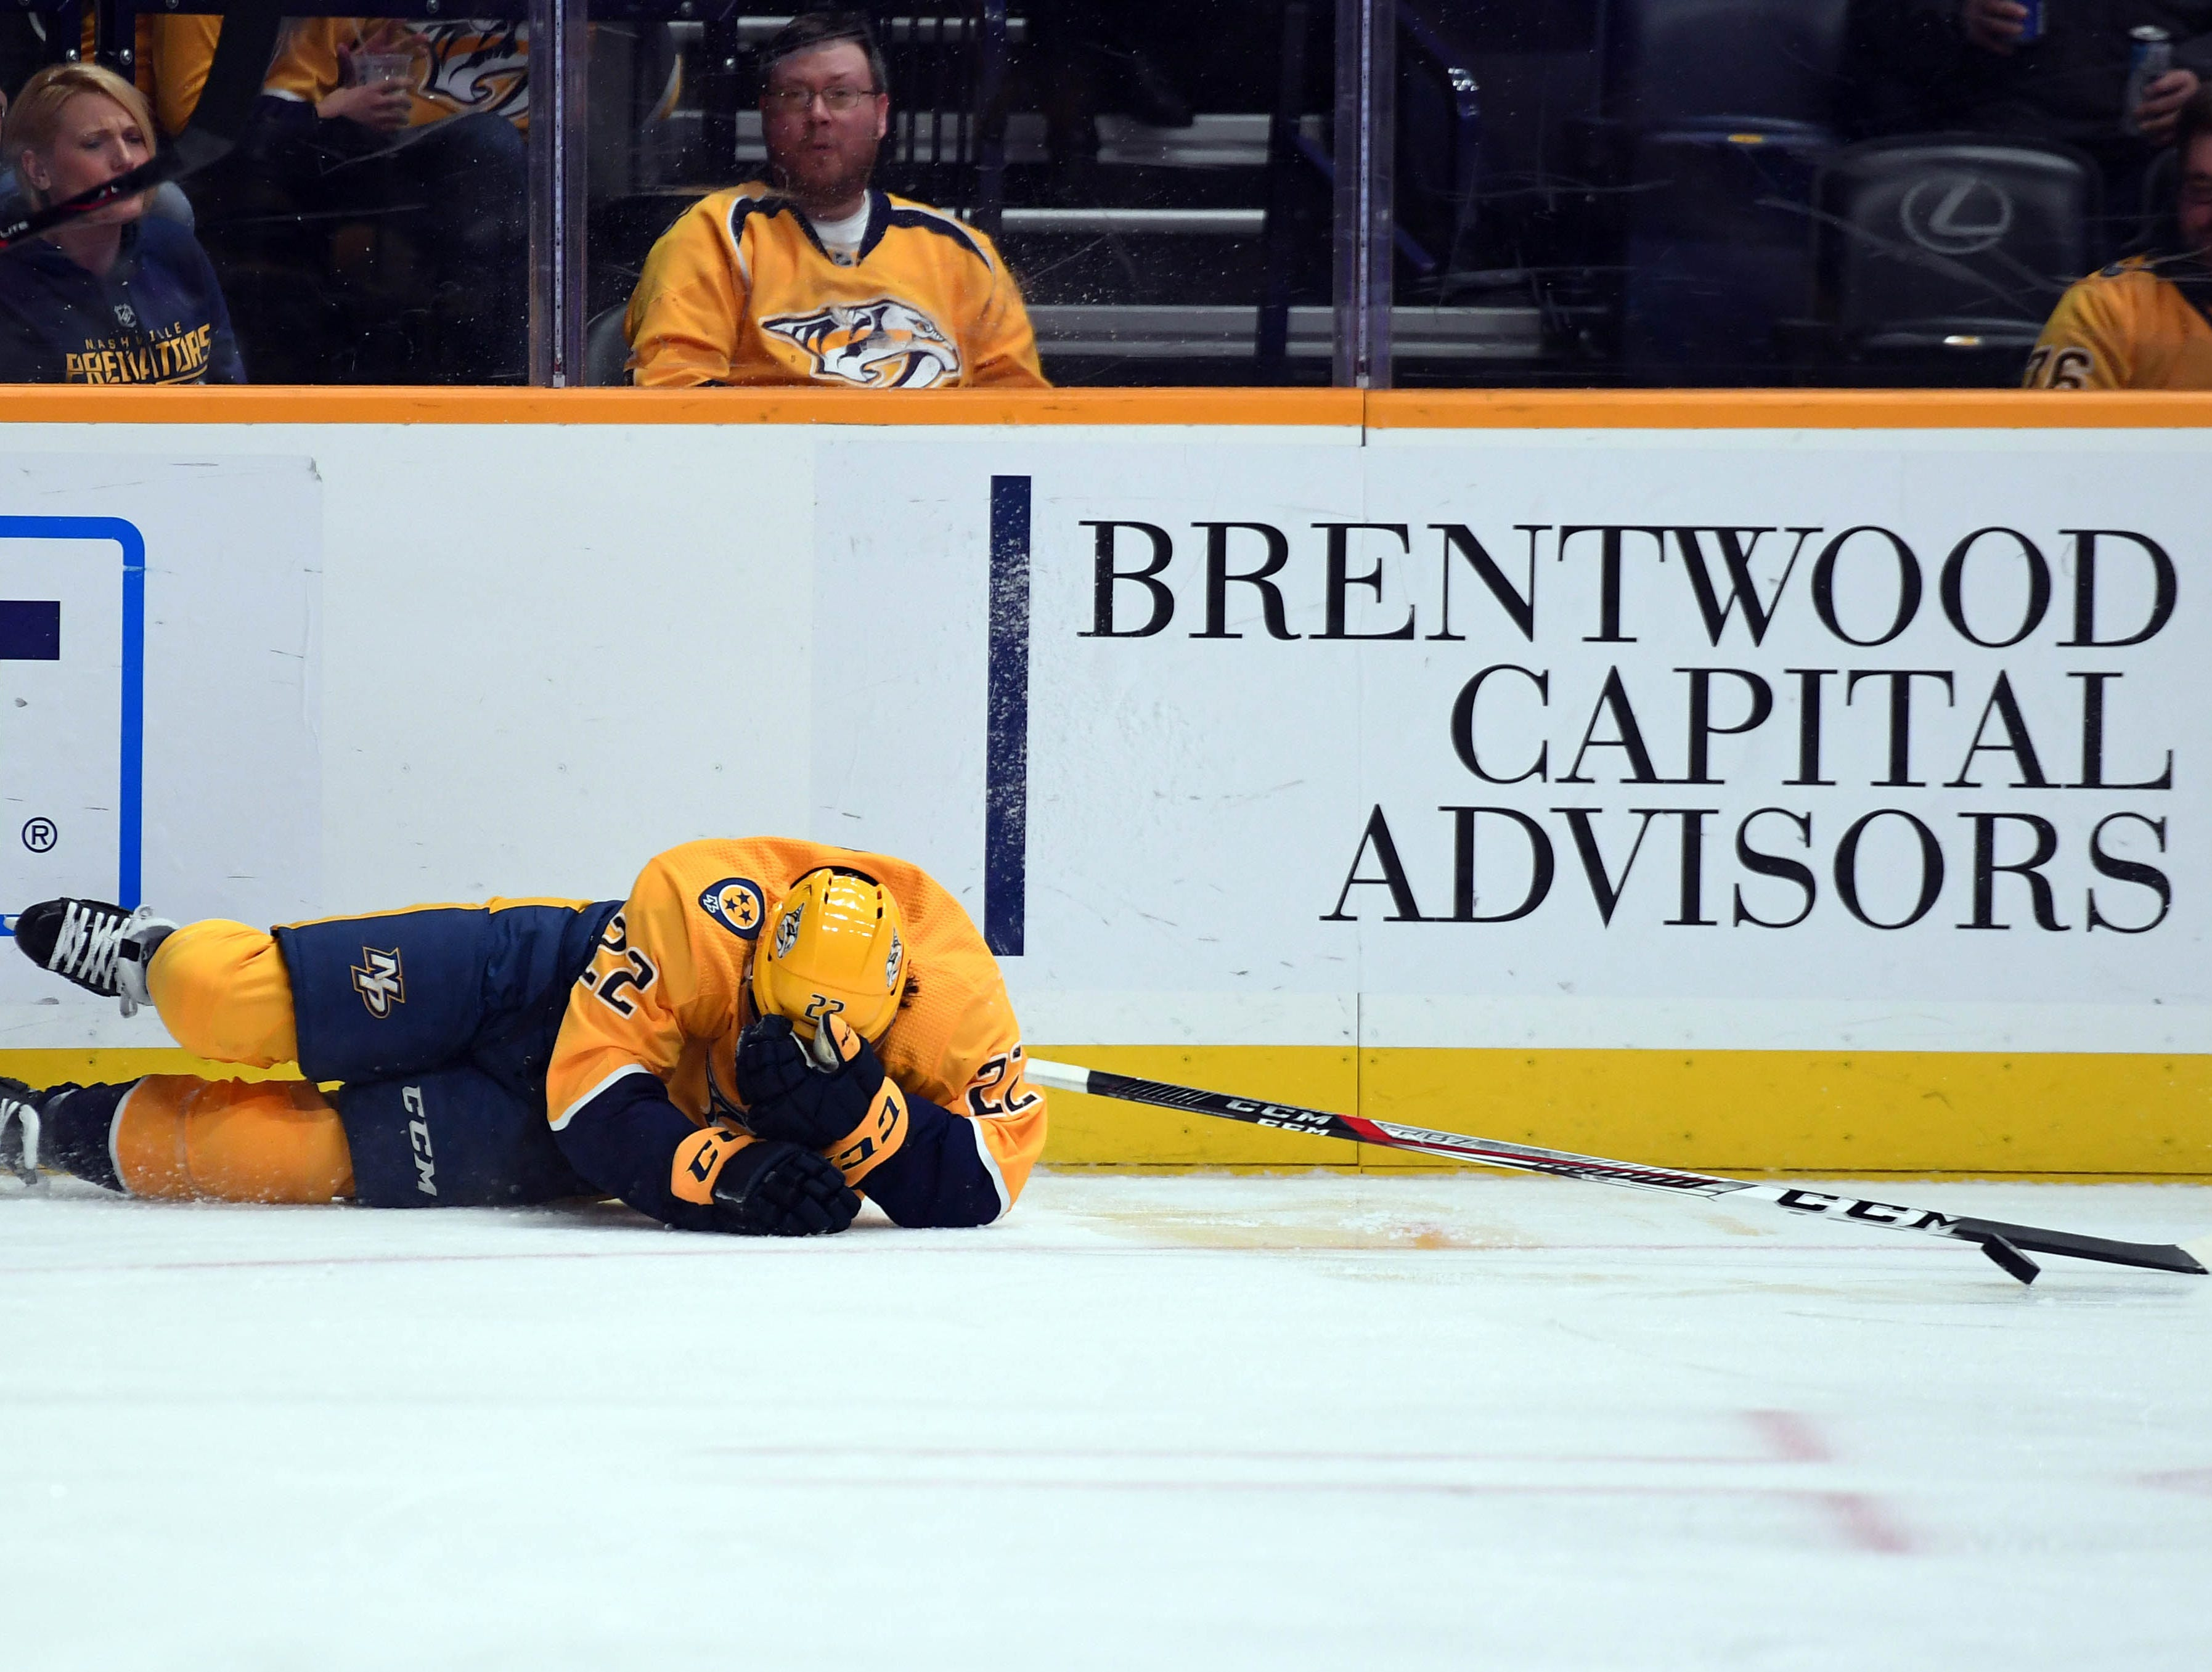 Nashville Predators left wing Kevin Fiala (22) holds his head after crashing into the boards during the first period against the New York Rangers at Bridgestone Arena in Nashville, Tenn. on Dec. 29, 2018.